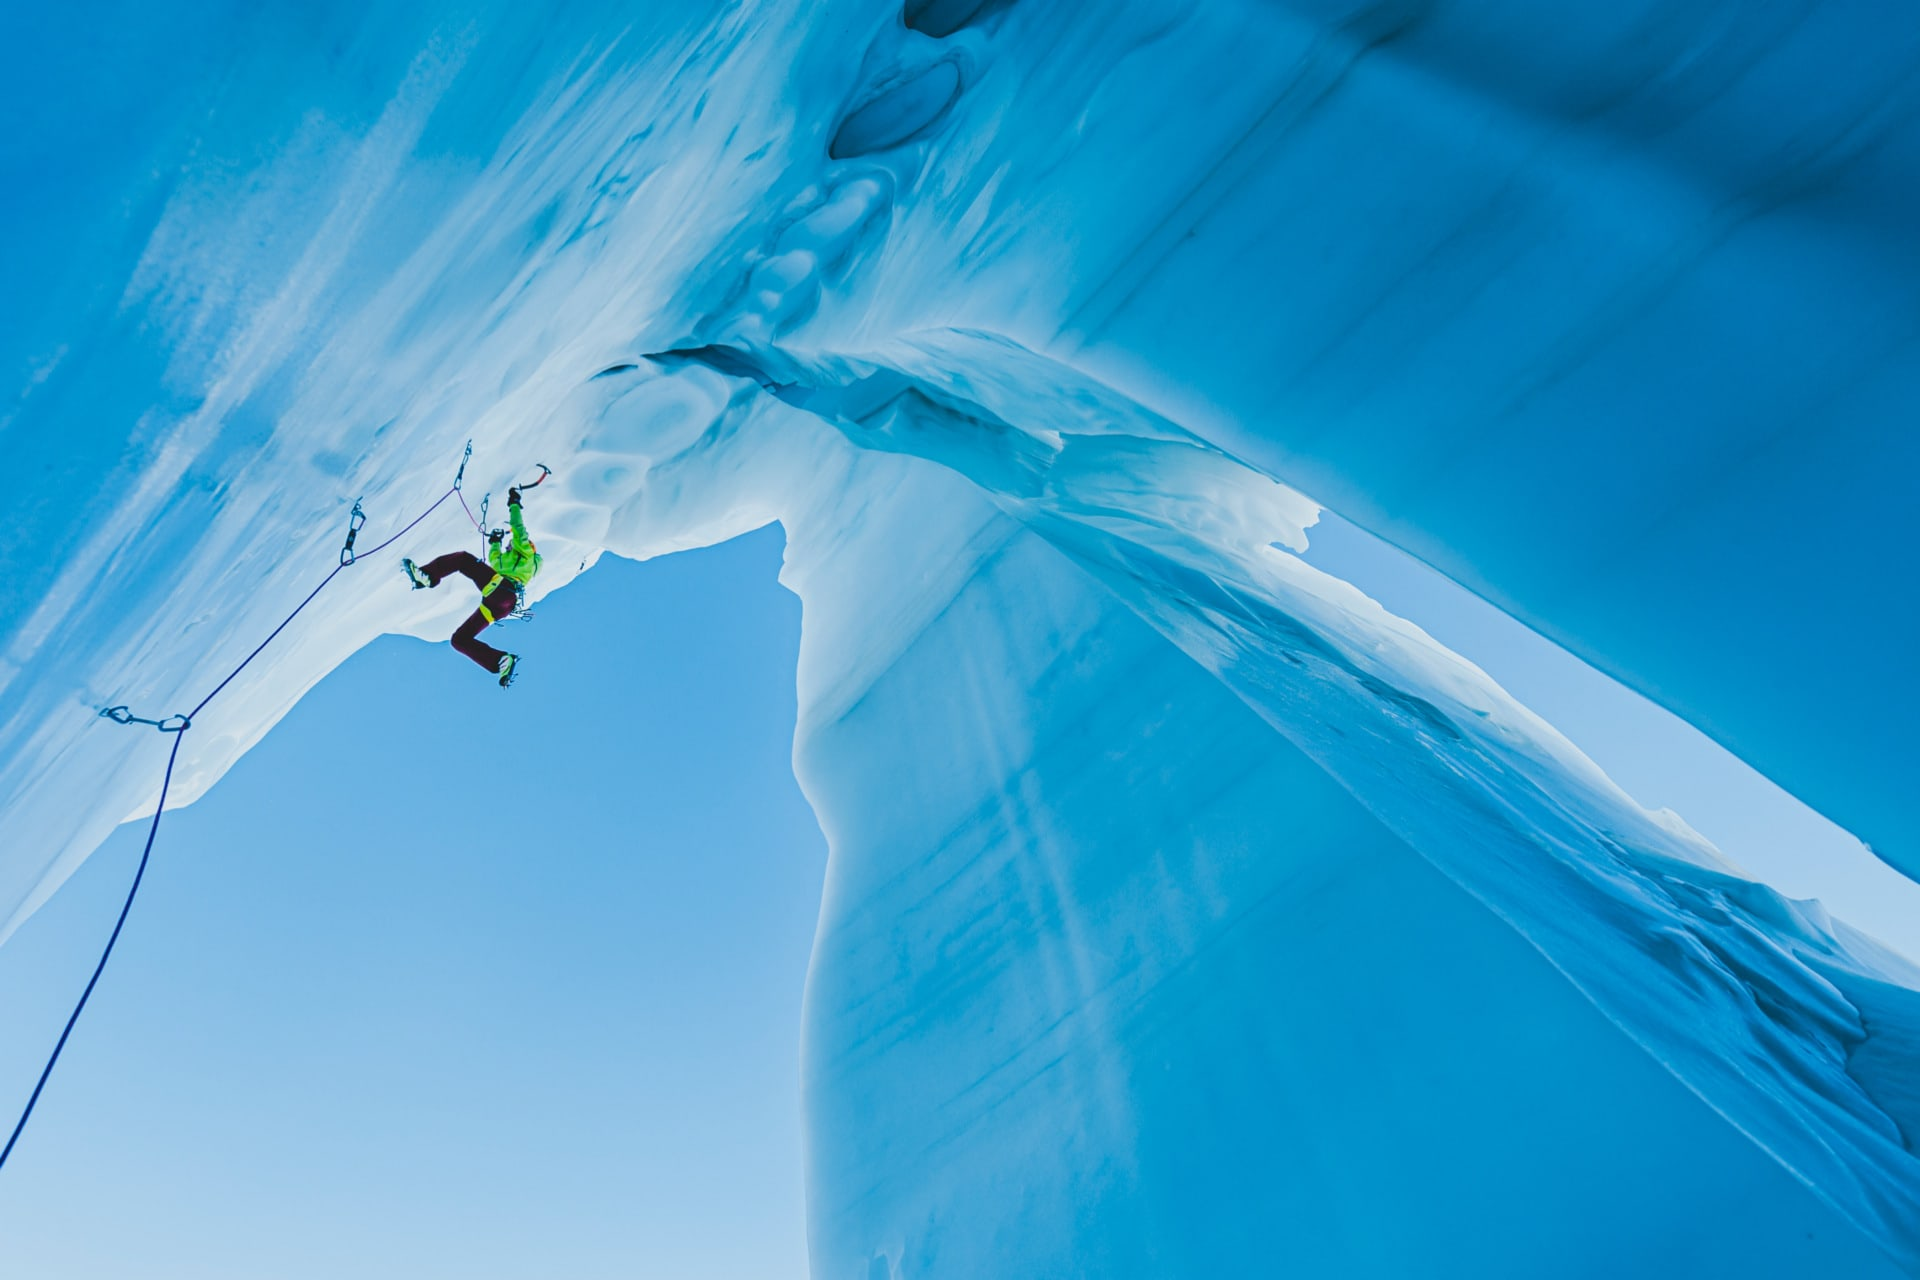 INES PAPERT CLIMBING IN THE GLACIER FROM AGENTIERE